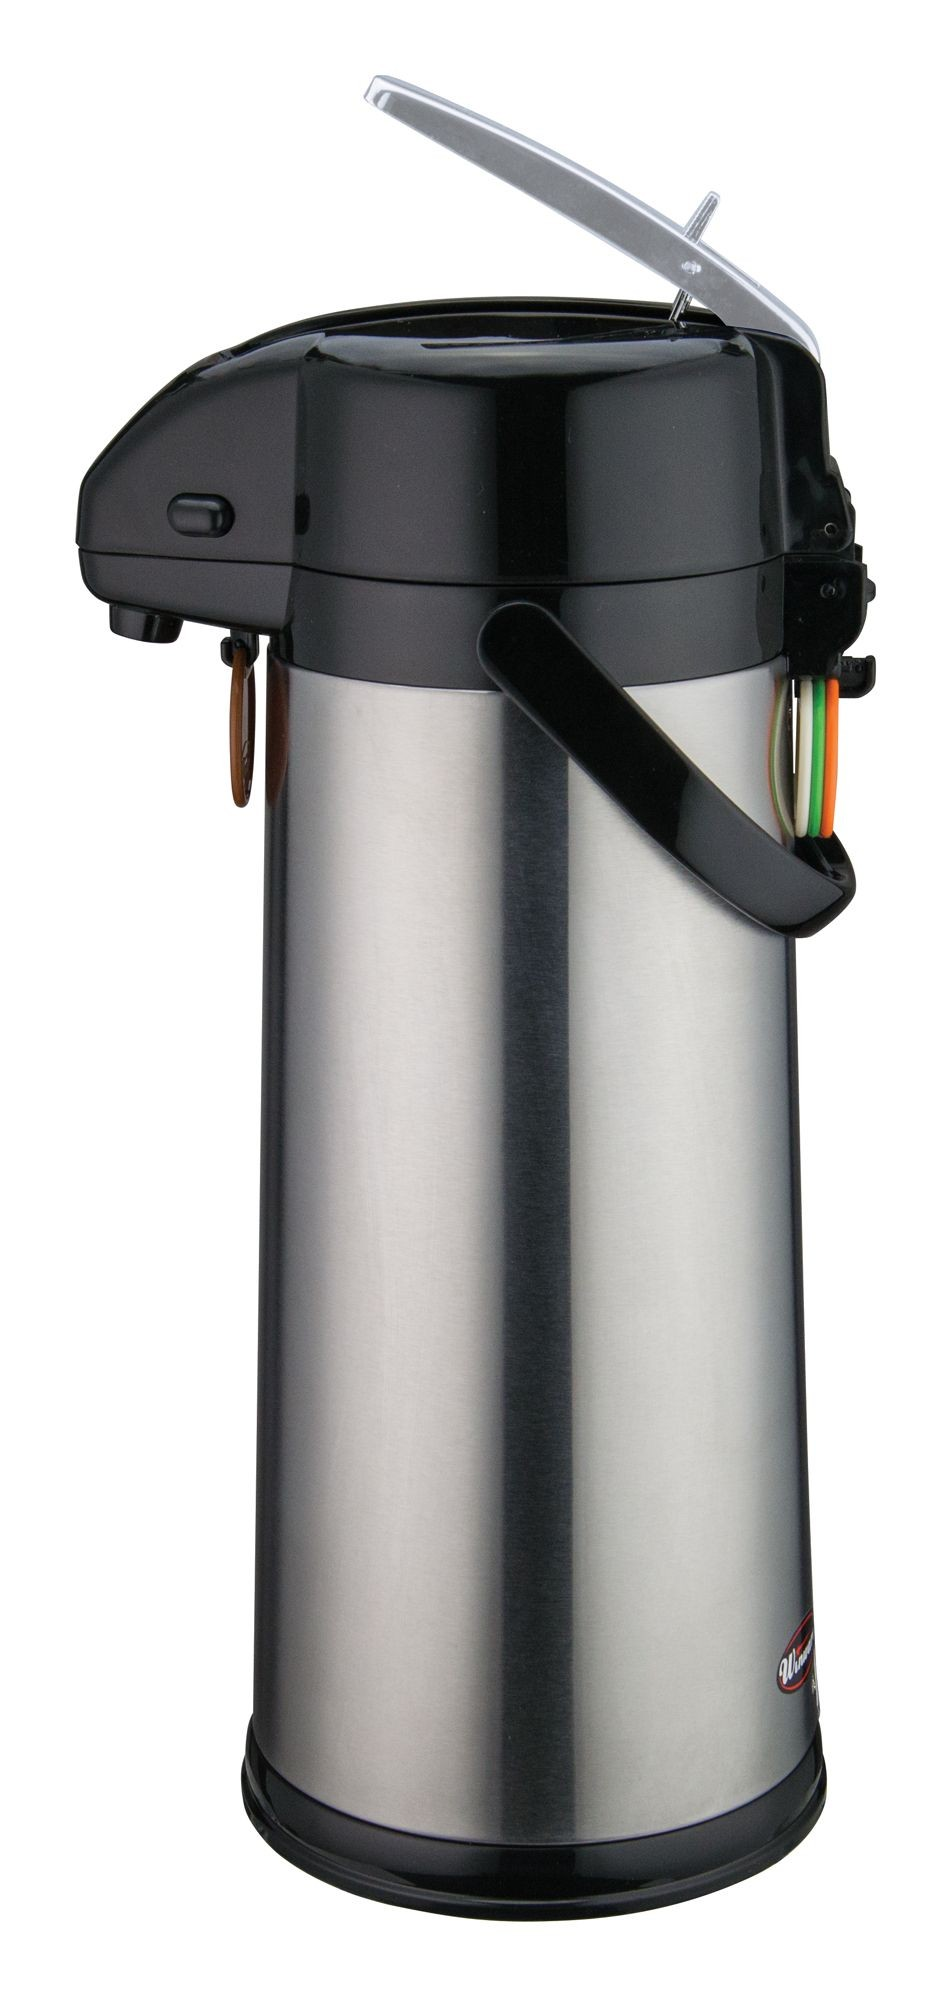 Winco AP-835 Stainless Steel Glass Lined Vaccum Server with Lever Top 3.0 Liter